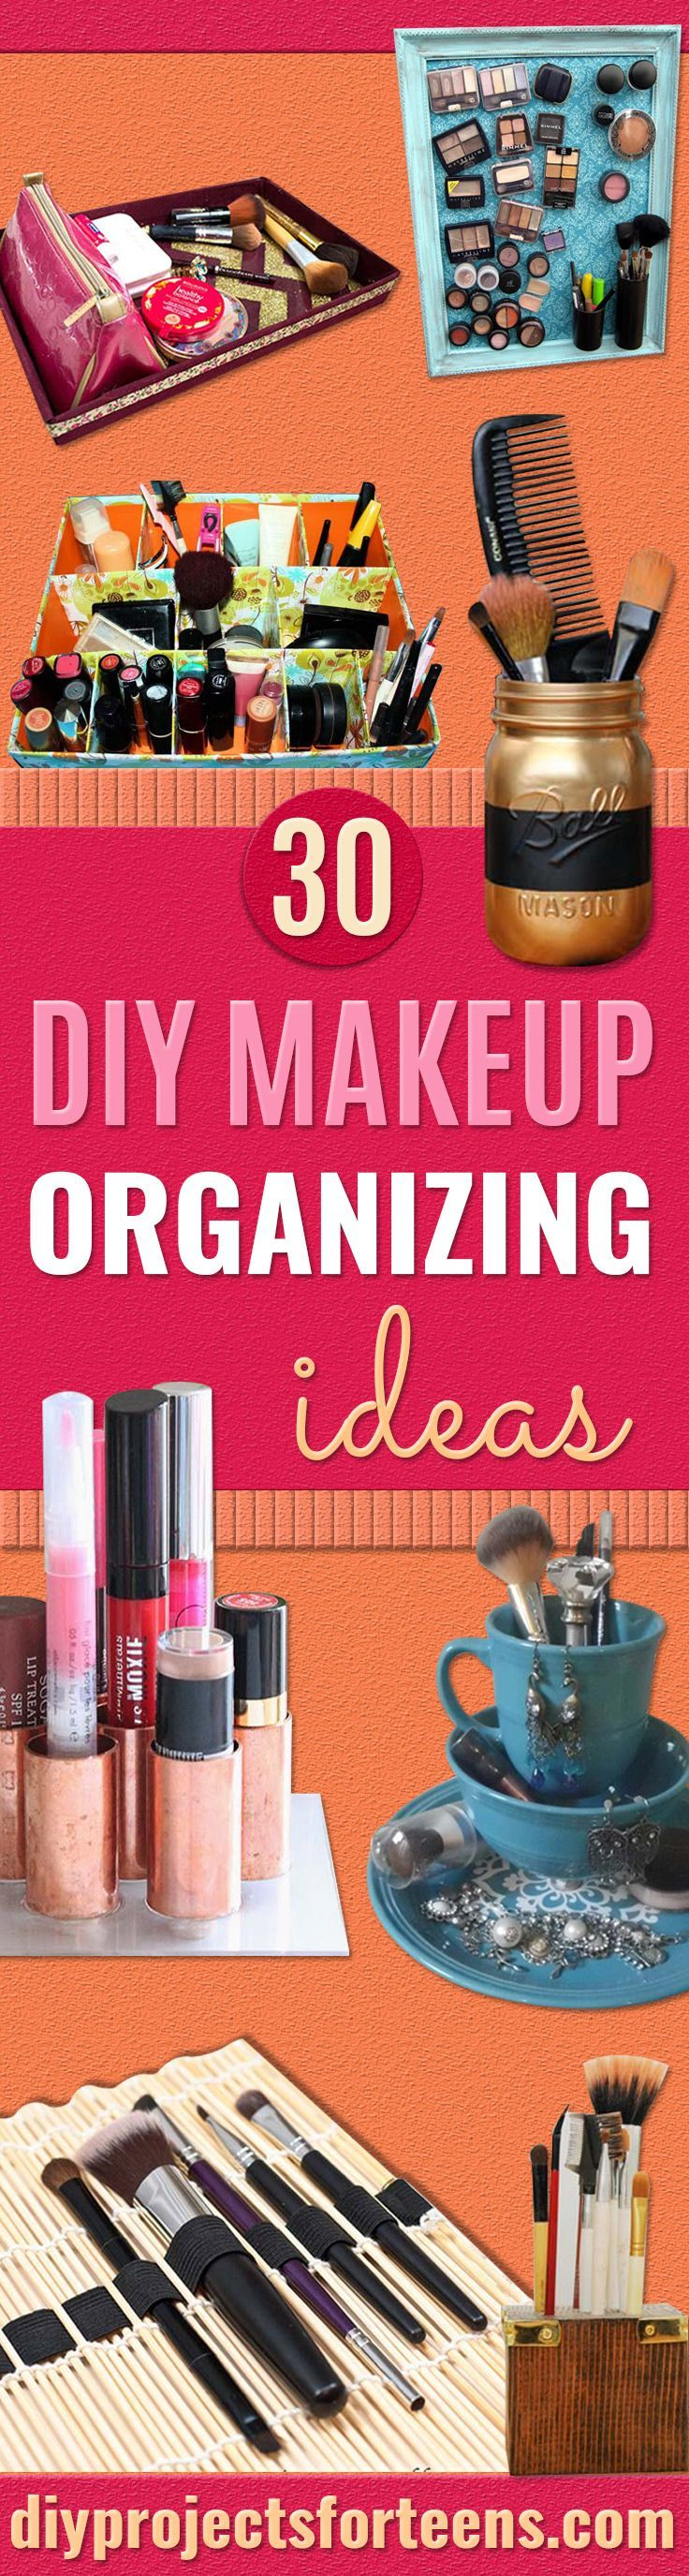 DIY Makeup Organizing Ideas - Projects for Makeup Drawer, Box, Storage, Jars and Wall Displays - Cheap Dollar Tree Ideas with Cardboard and Shoebox - Wood Organizers, Tray and Travel Carriers http://diyprojectsforteens.com/diy-makeup-organizing